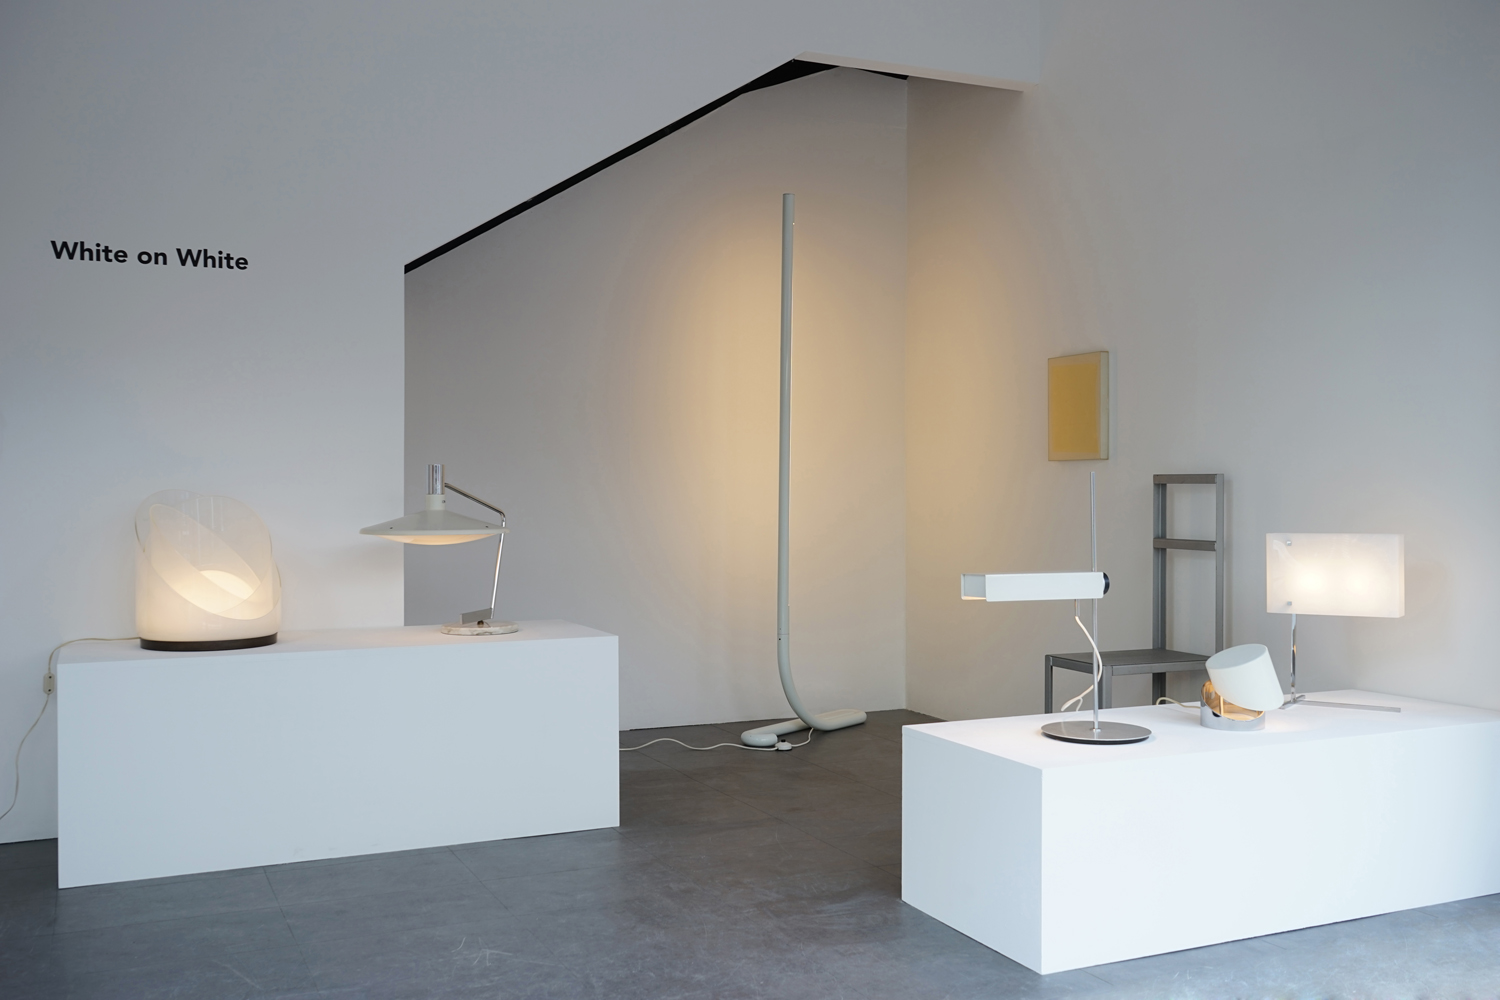 White on White Galerie A 1043